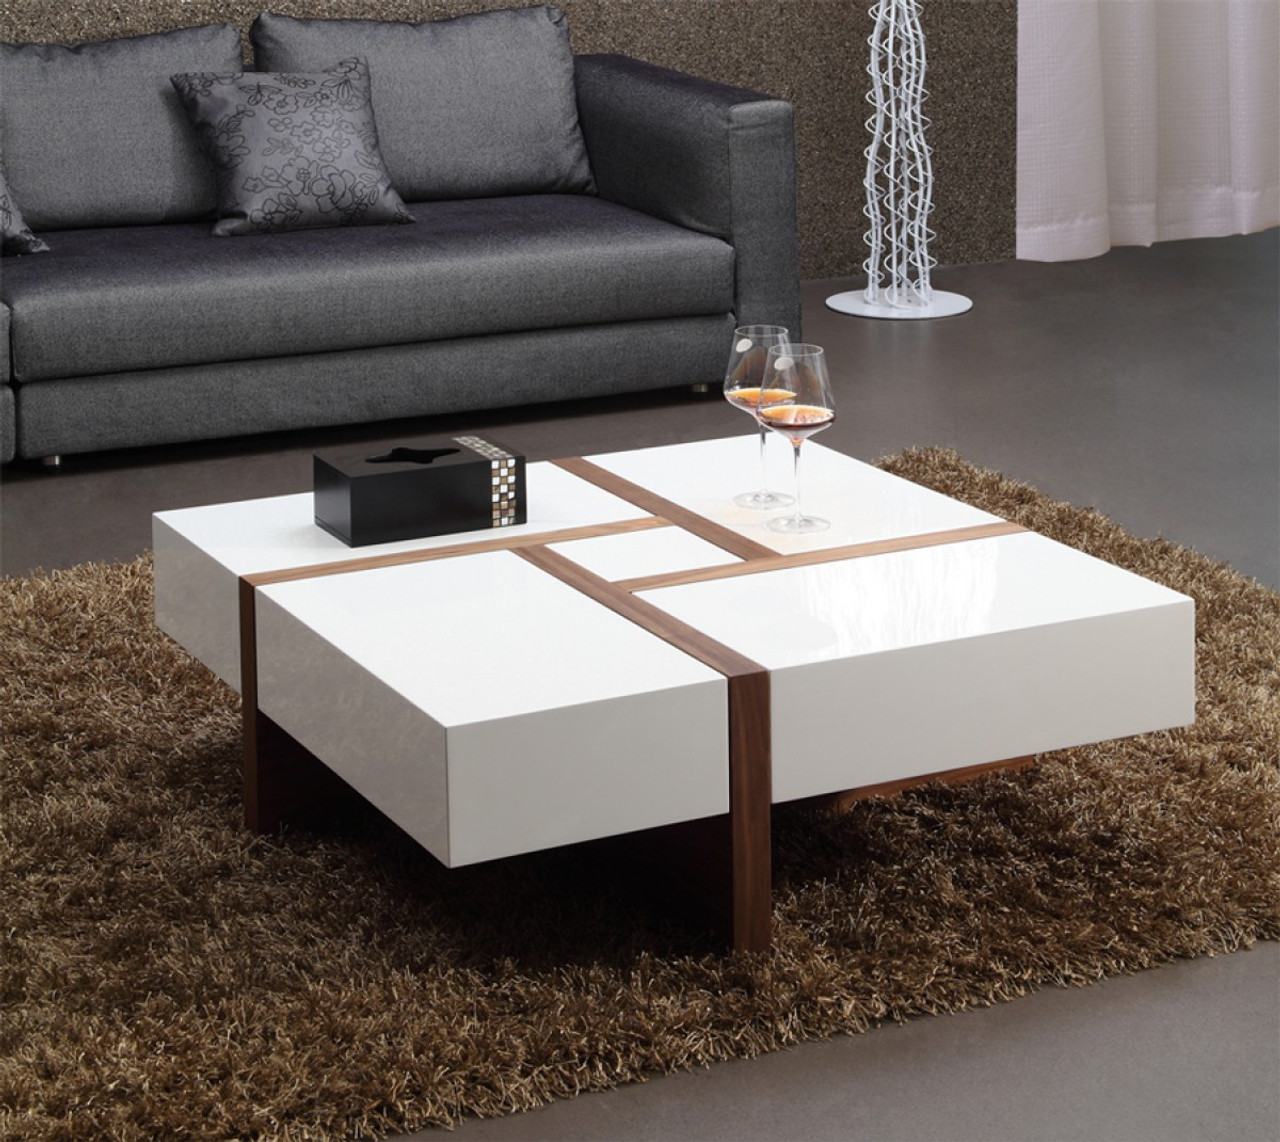 Strange Modrest Makai Modern White Walnut Square Coffee Table Caraccident5 Cool Chair Designs And Ideas Caraccident5Info